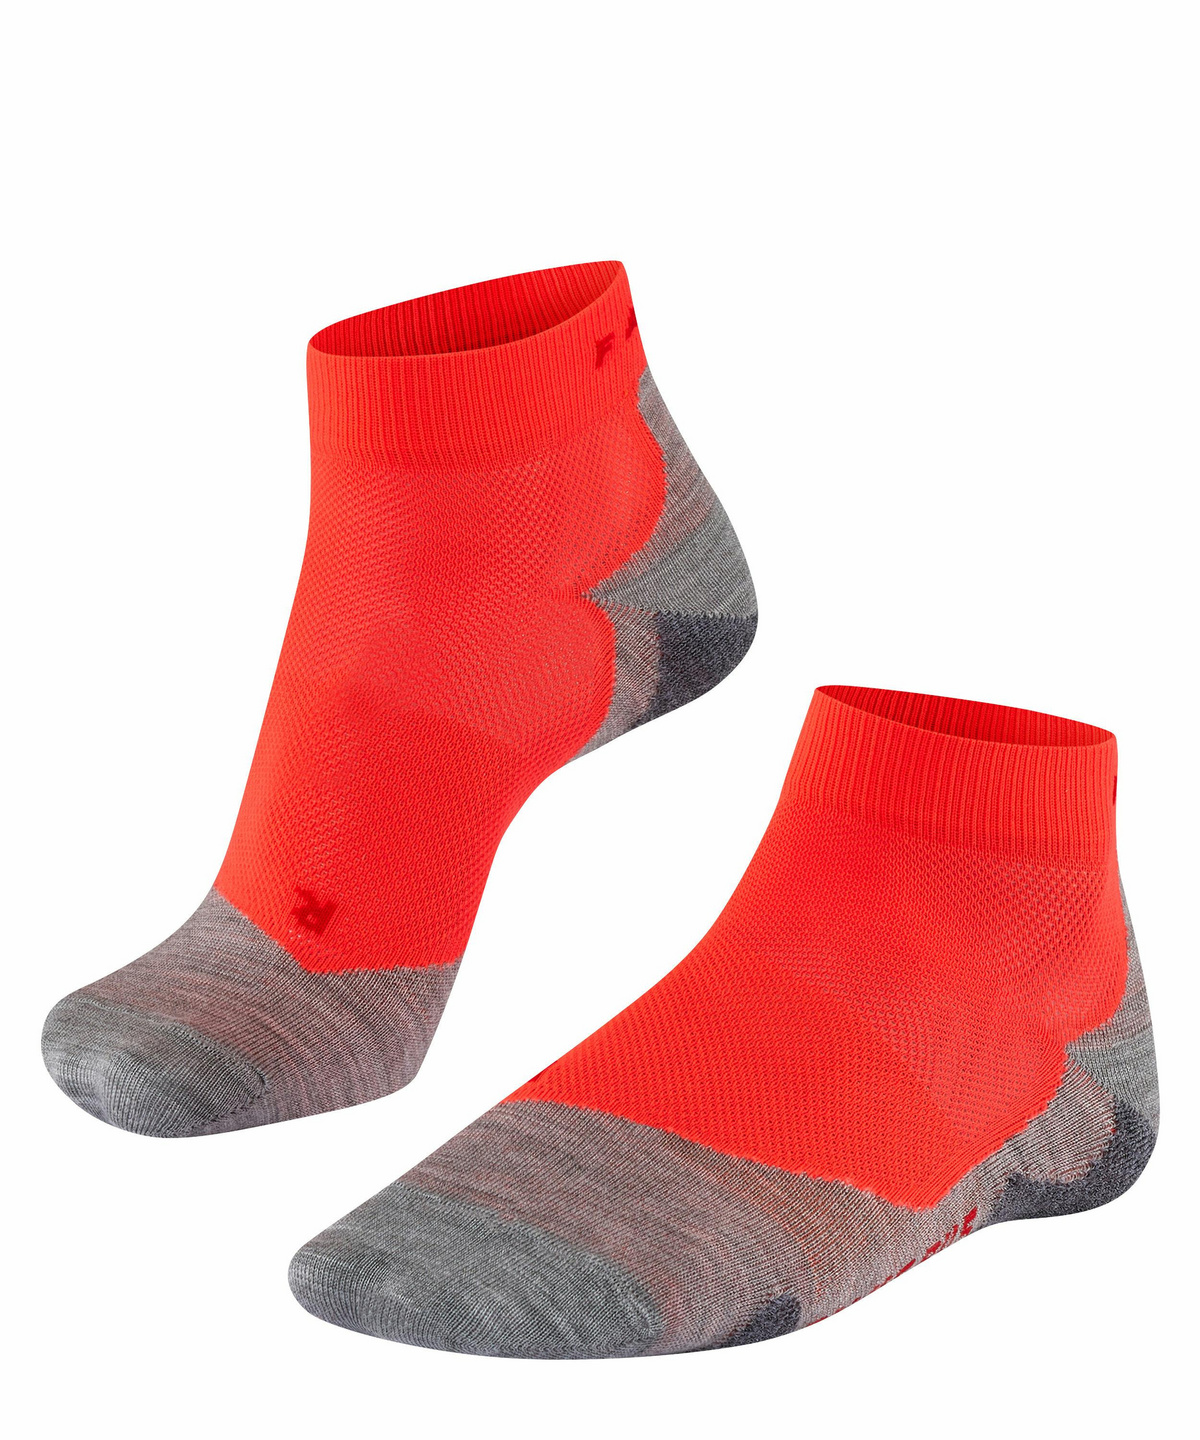 FALKE Mens RU4 Short Running Socks Cotton Black White More Colours Ankle Length Thin Lightweight Padded Cushioned Sole Breathable Quick Dry Anti Blister 1 Pair